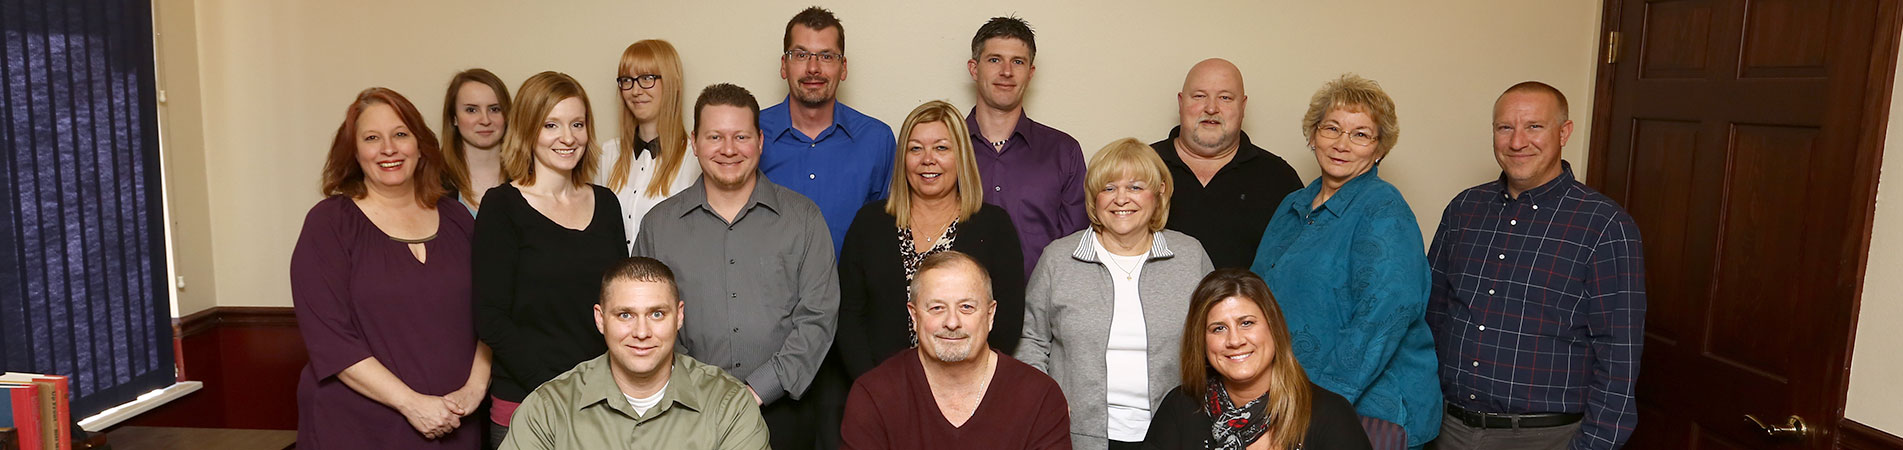 The whole team here at Sunset Realty Services.